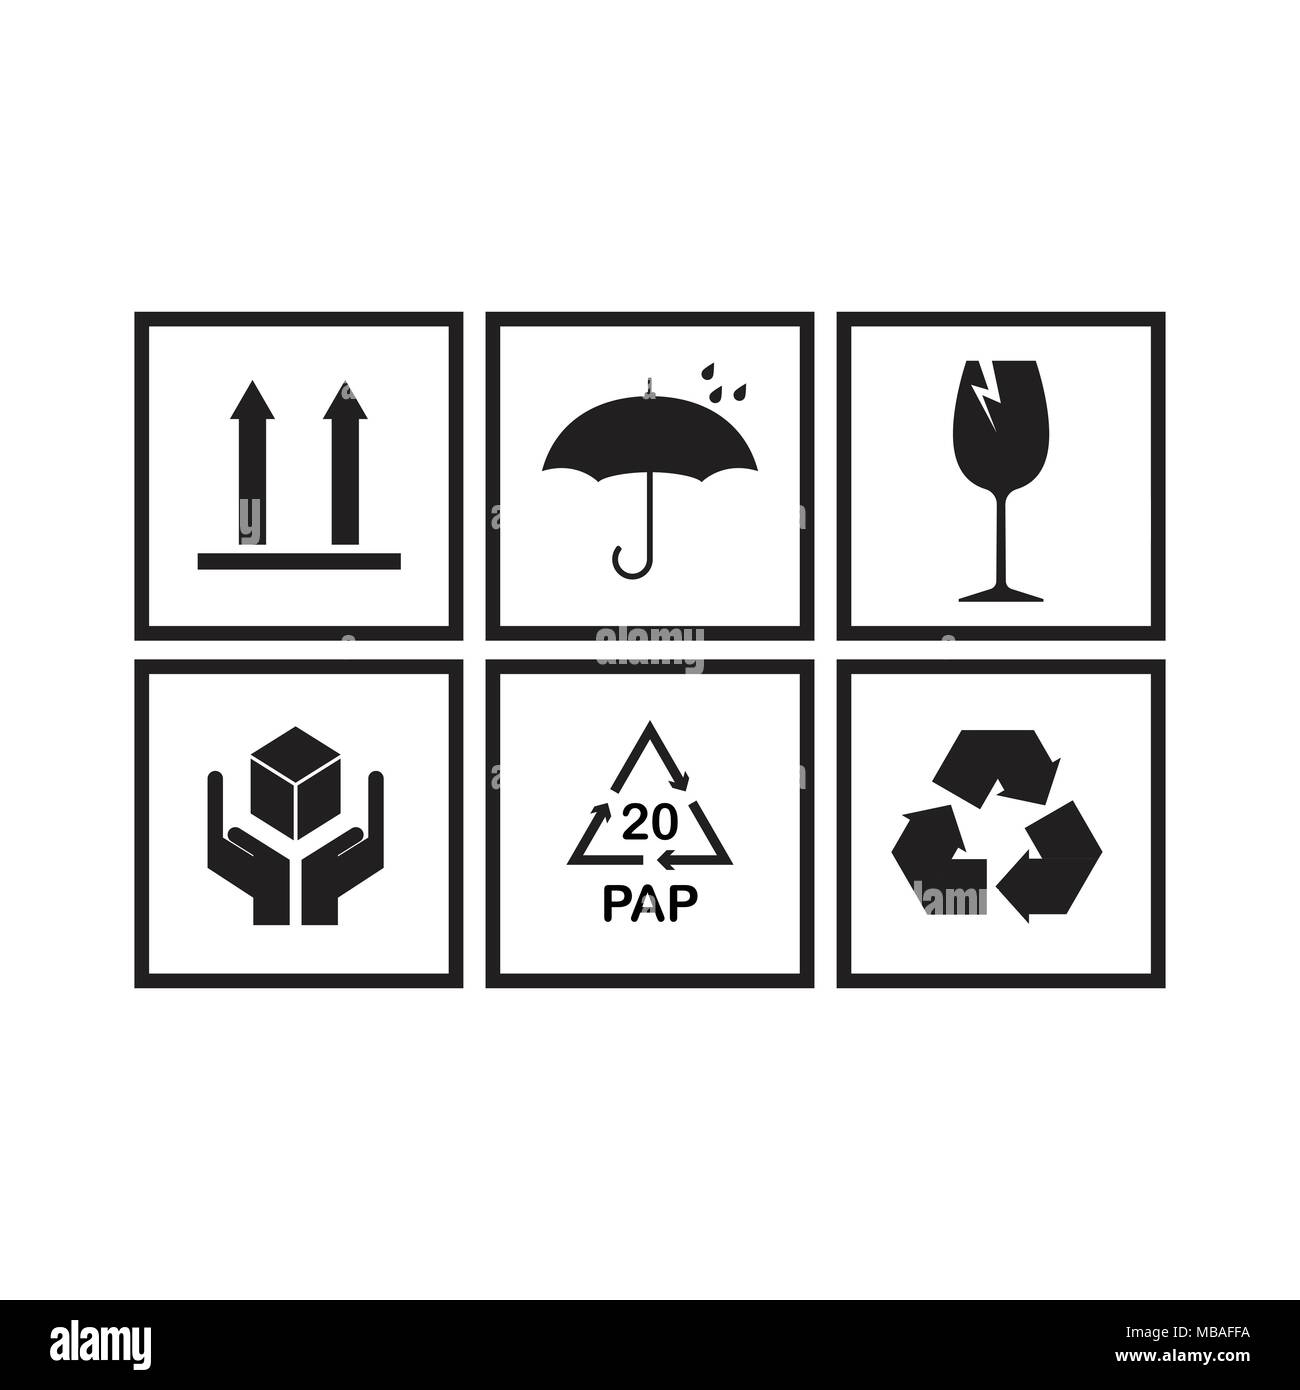 Packaging Symbols Stock Photos & Packaging Symbols Stock Images - Alamy